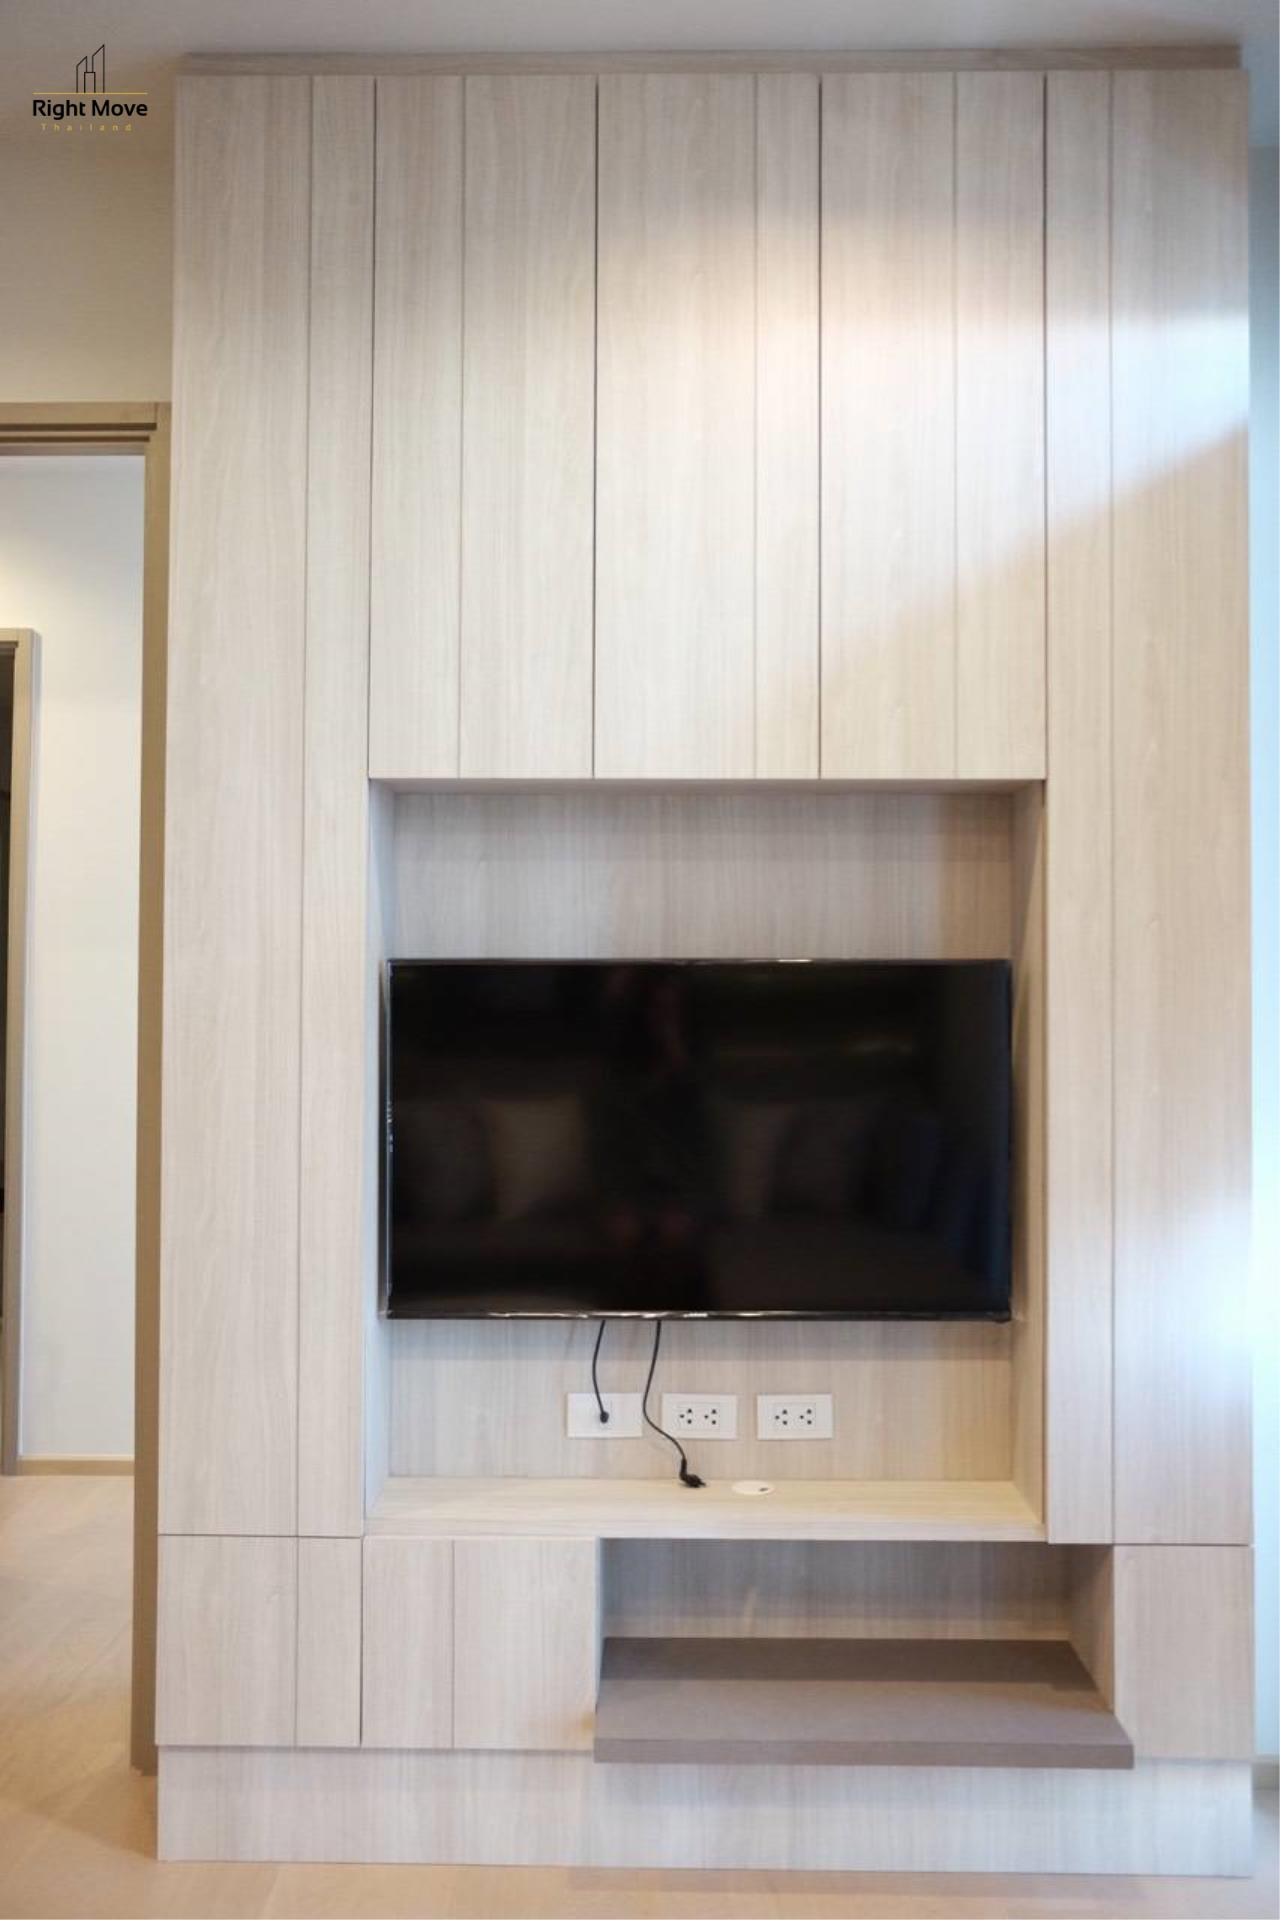 Right Move Thailand Agency's CA6138 HQ Thonglor For Rent 45,000 THB 2 Bedroom 43.5 Sqm 4